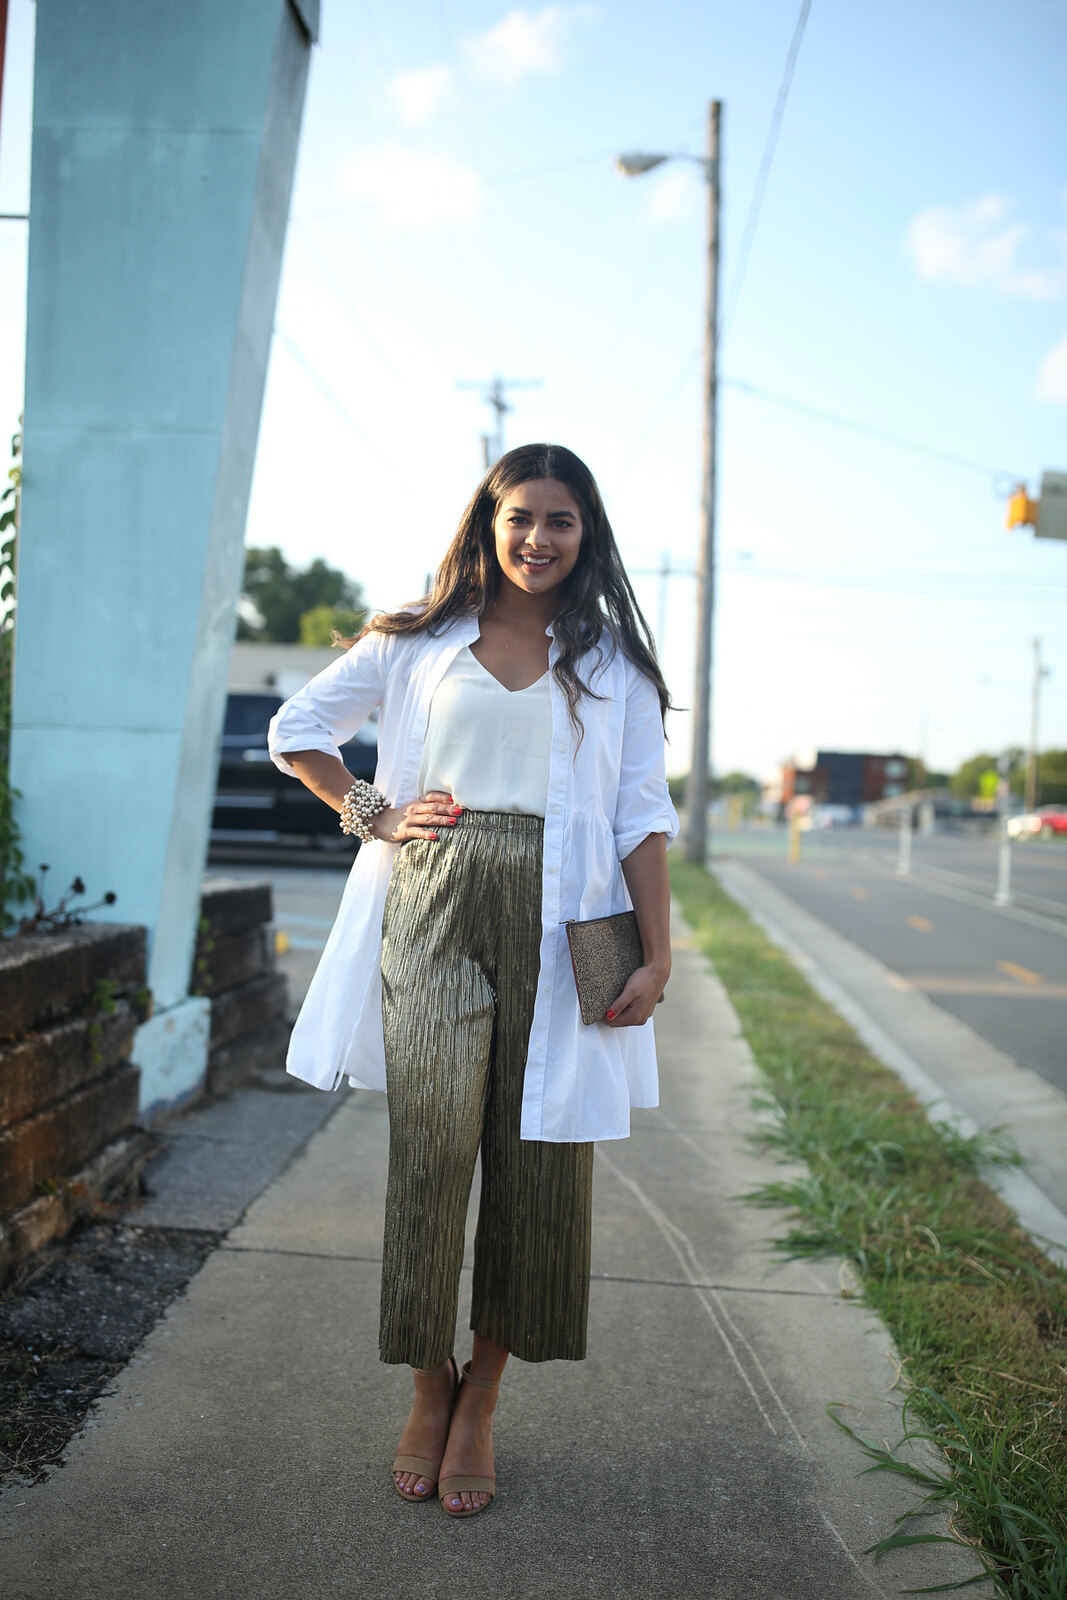 Priya the Blog, Nashville fashion blog, Nashville fashion blogger, Nashville style blog, Nashville style blogger, Topshop metallic trousers, how to wear metallic pants, gold pants for Summer, Summer outfit with metallic pants, Topshop gold pants, Zara swing dress, the Nations Nashville